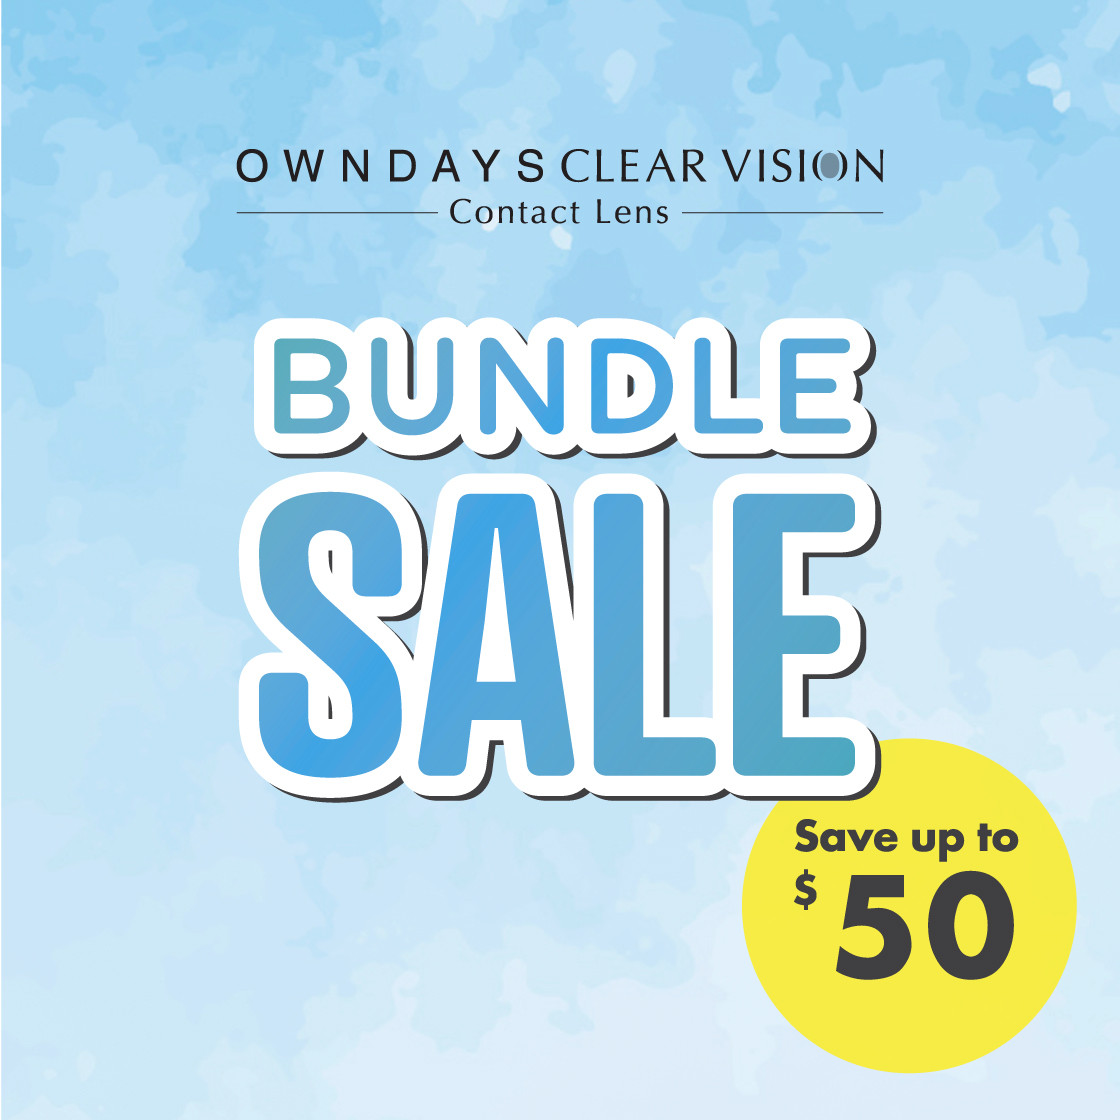 OWNDAYS CLEAR VISION CONTACT LENS BUNDLE SALE